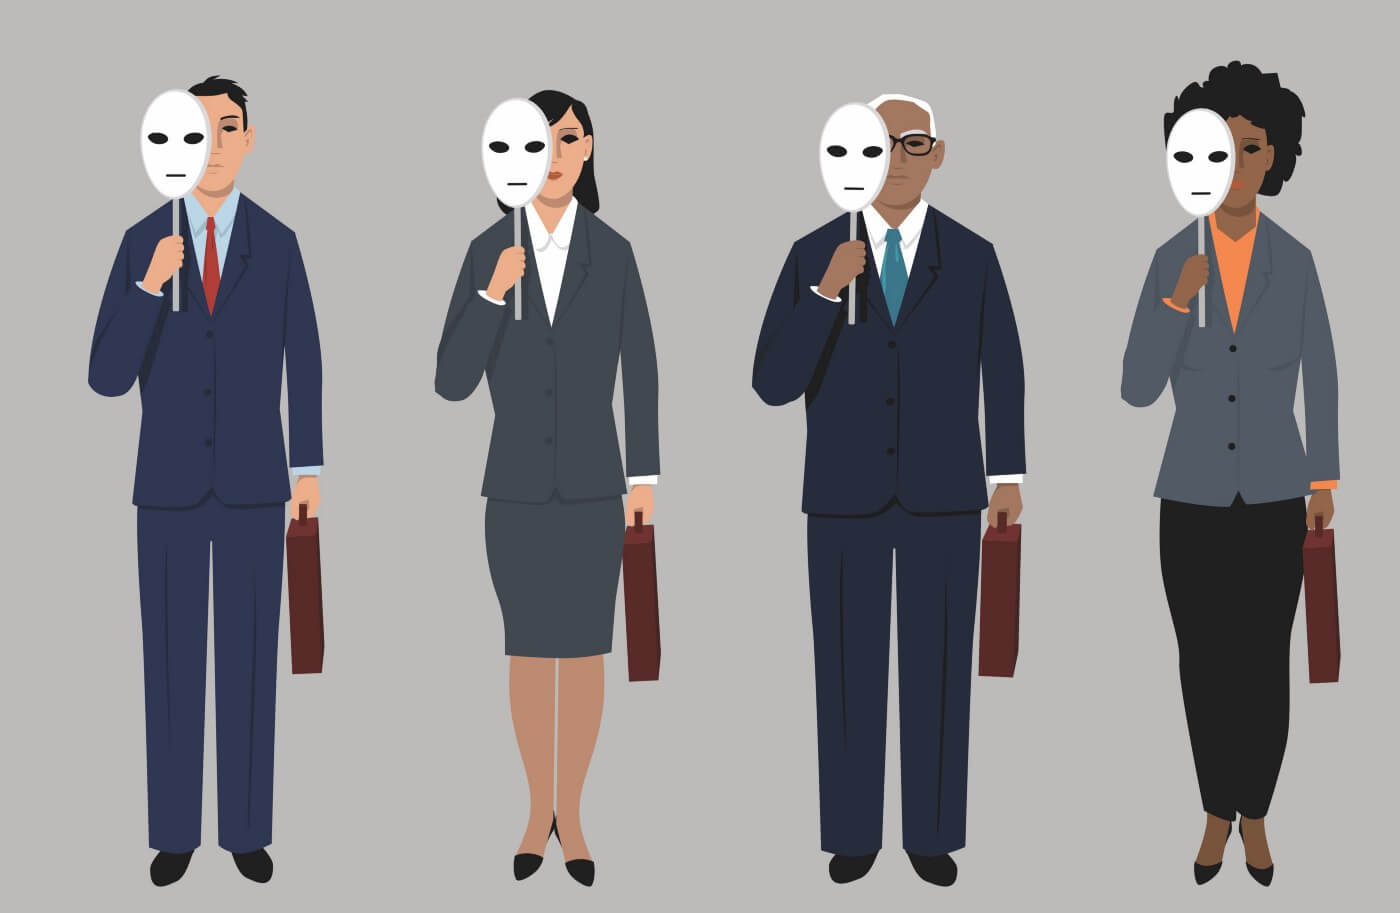 Four cartoon images of business people of different genders and races, each holding a white face mask partially covering their faces